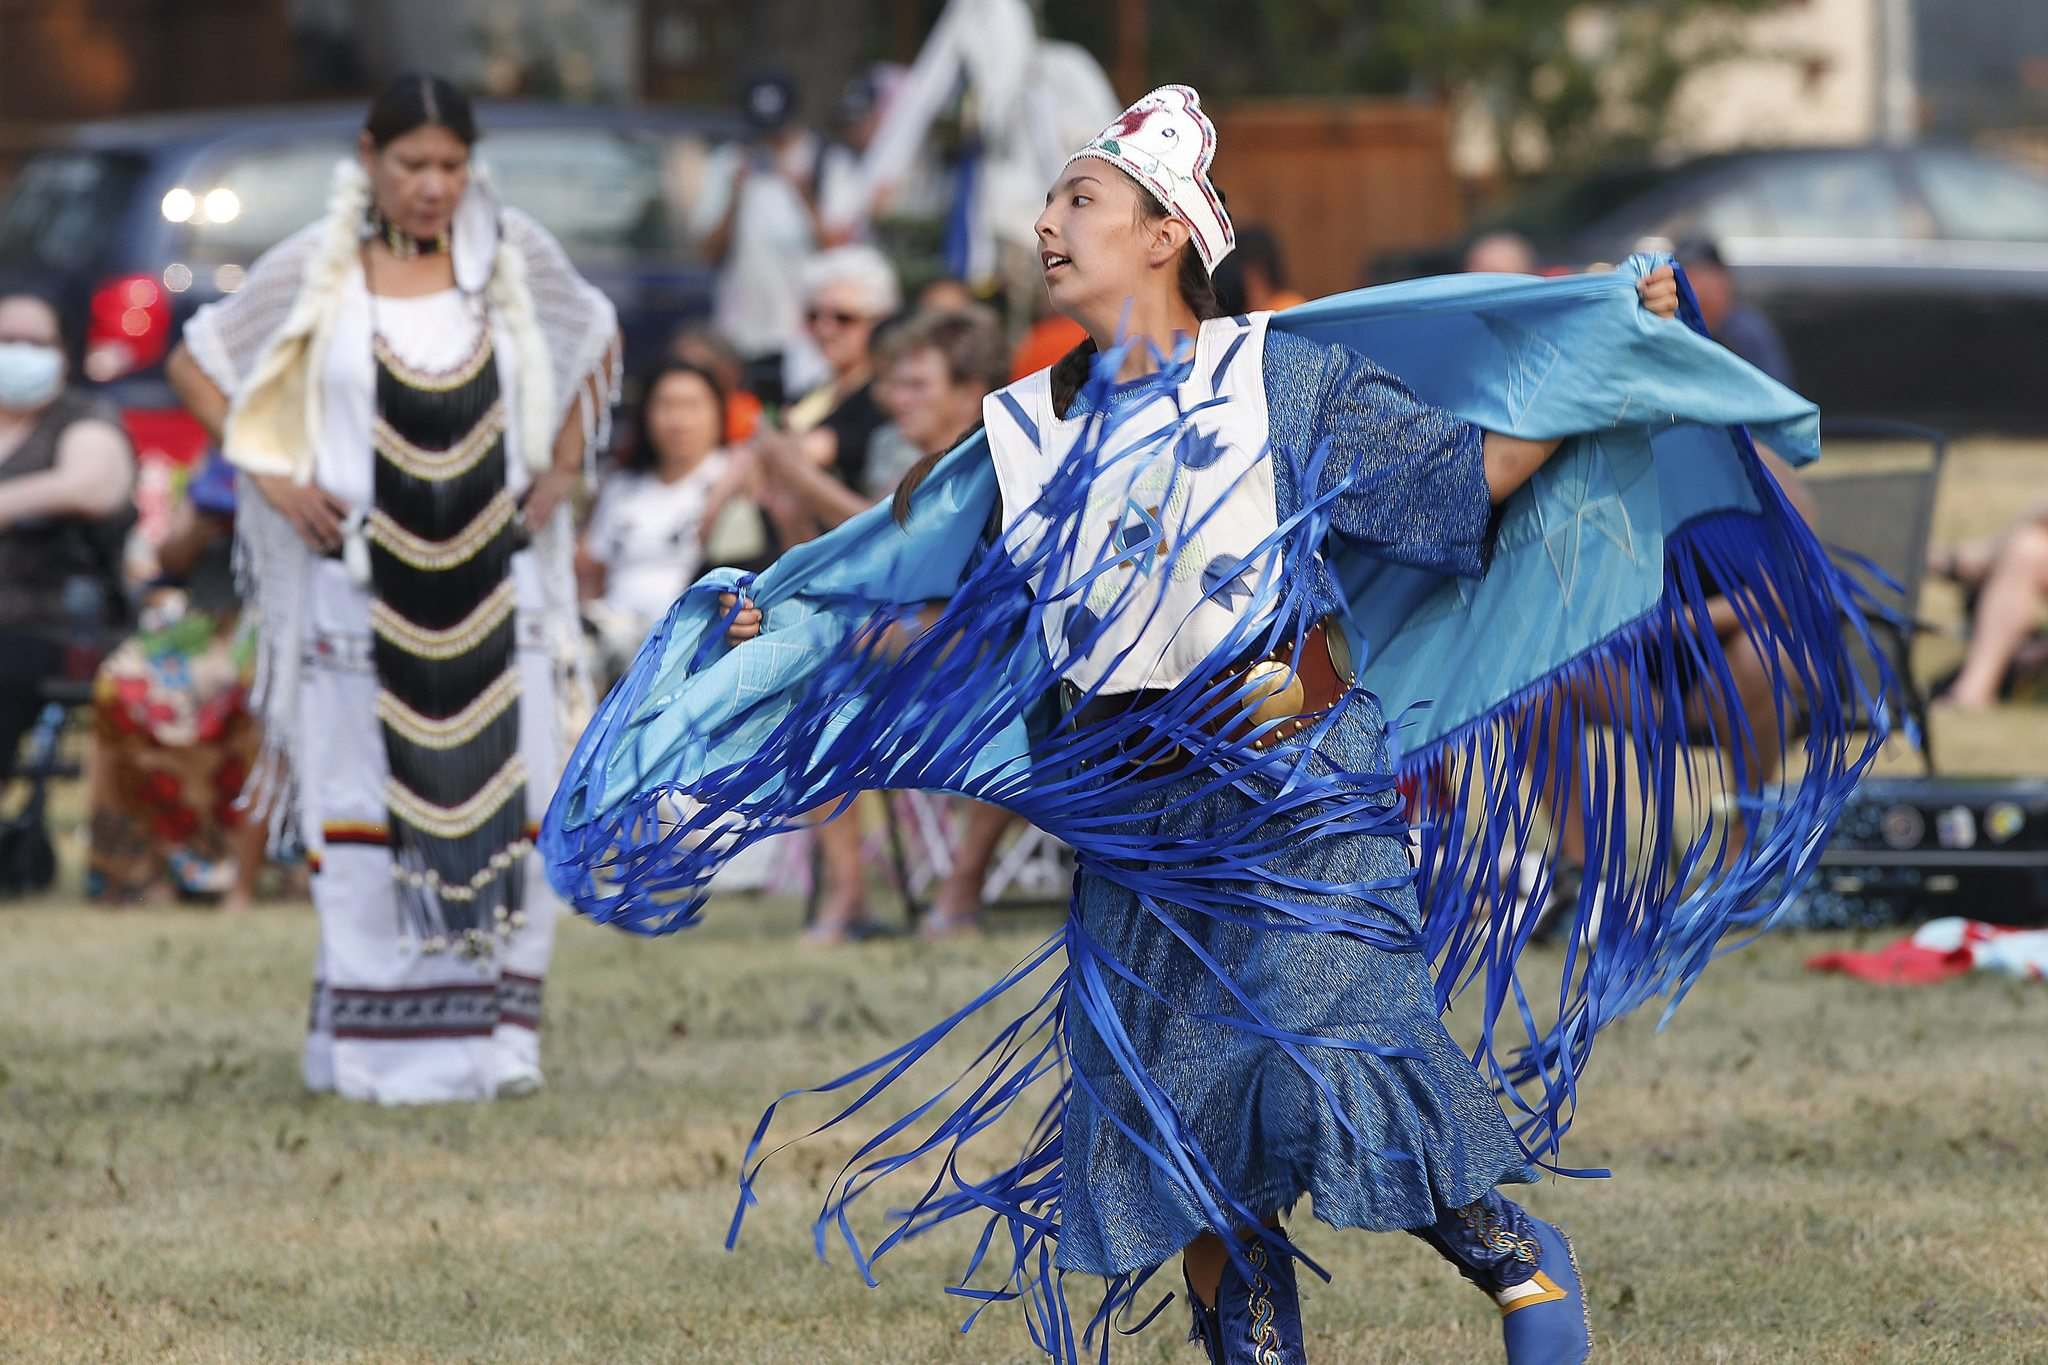 Cierra Roulette, who was also one of the event organizers, dances at the powwow. (John Woods / Winnipeg Free Press)</p></p>